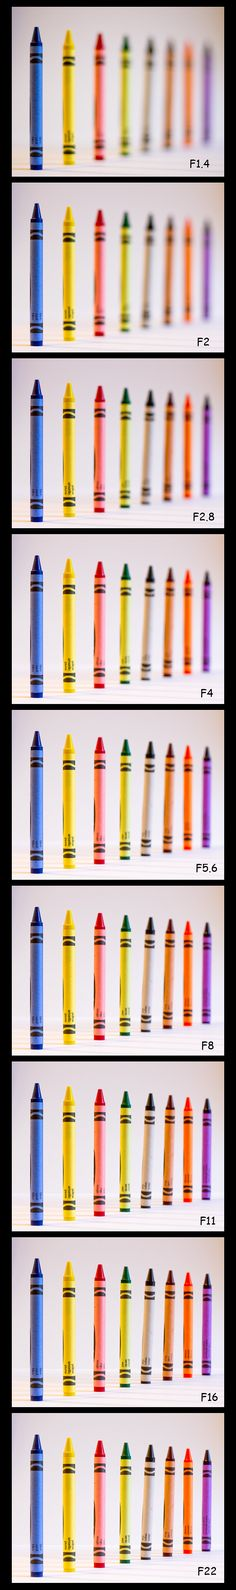 Using aperture to control depth of field. Low f-stop = open aperture and shallow depth of field. High f-stop = closed aperture and very wide or deep depth of field.